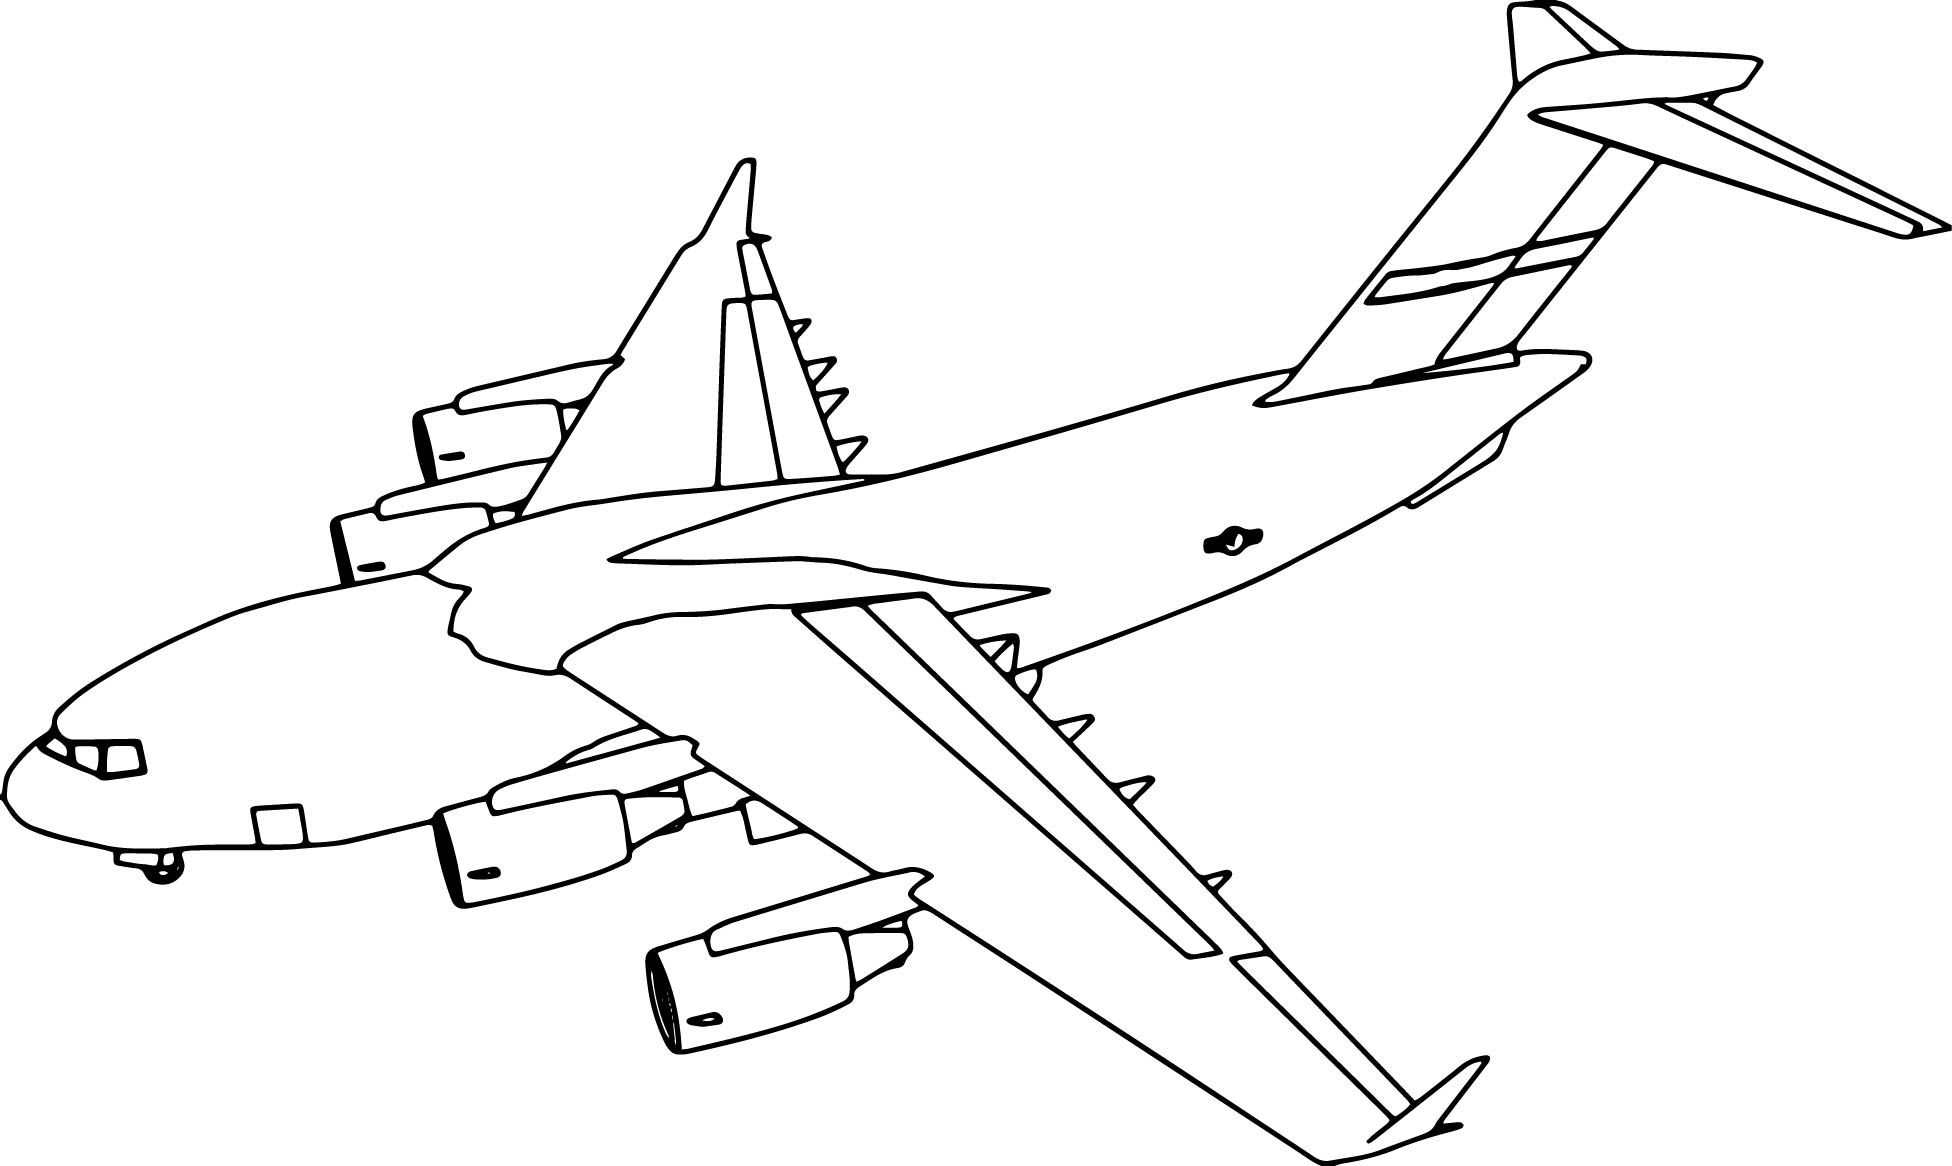 Cool C17 Plane Coloring Page